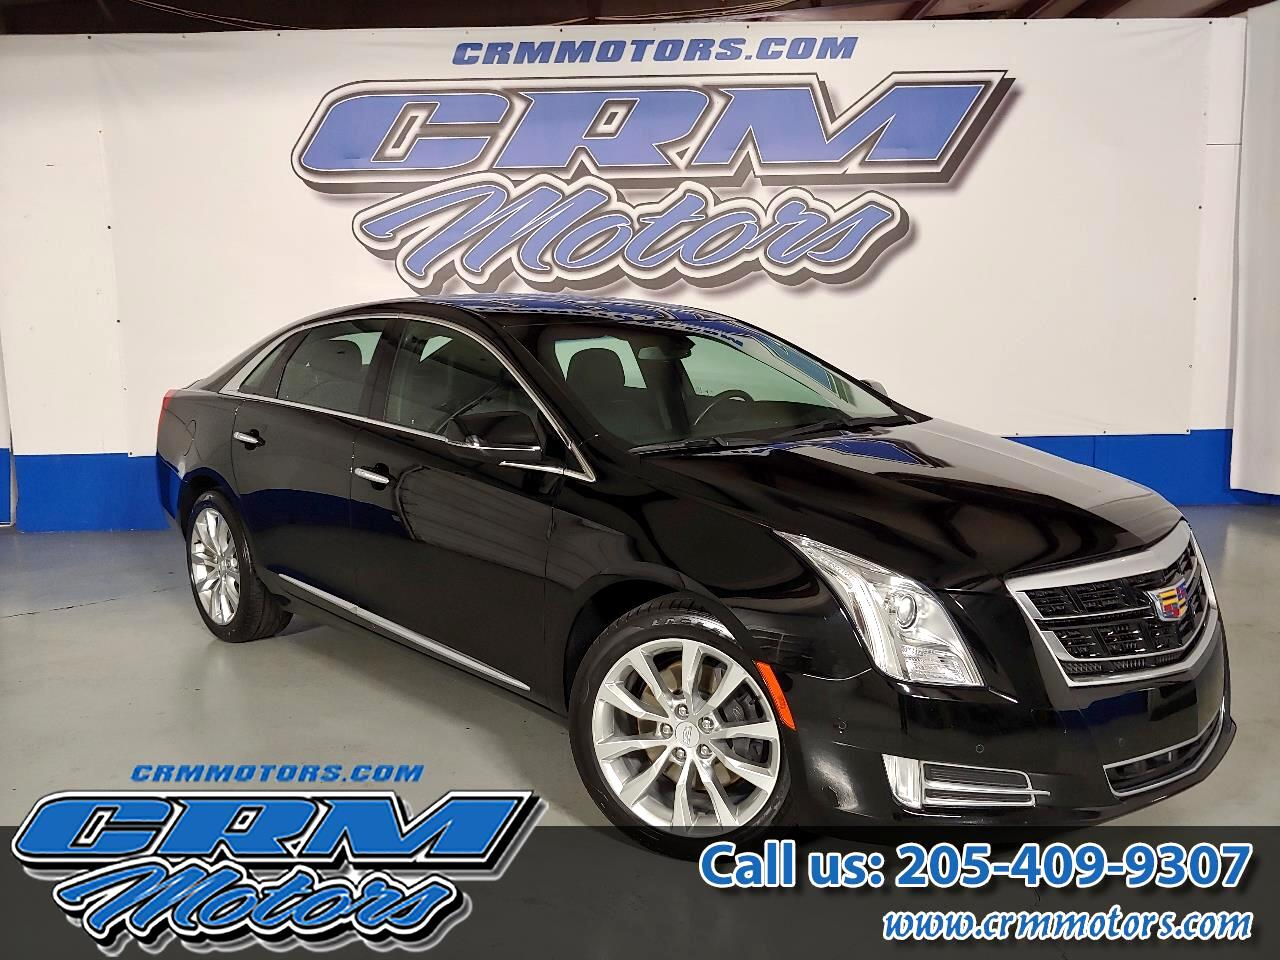 2016 Cadillac XTS LUXURY COLLECTION, SUPER LOW MILES!